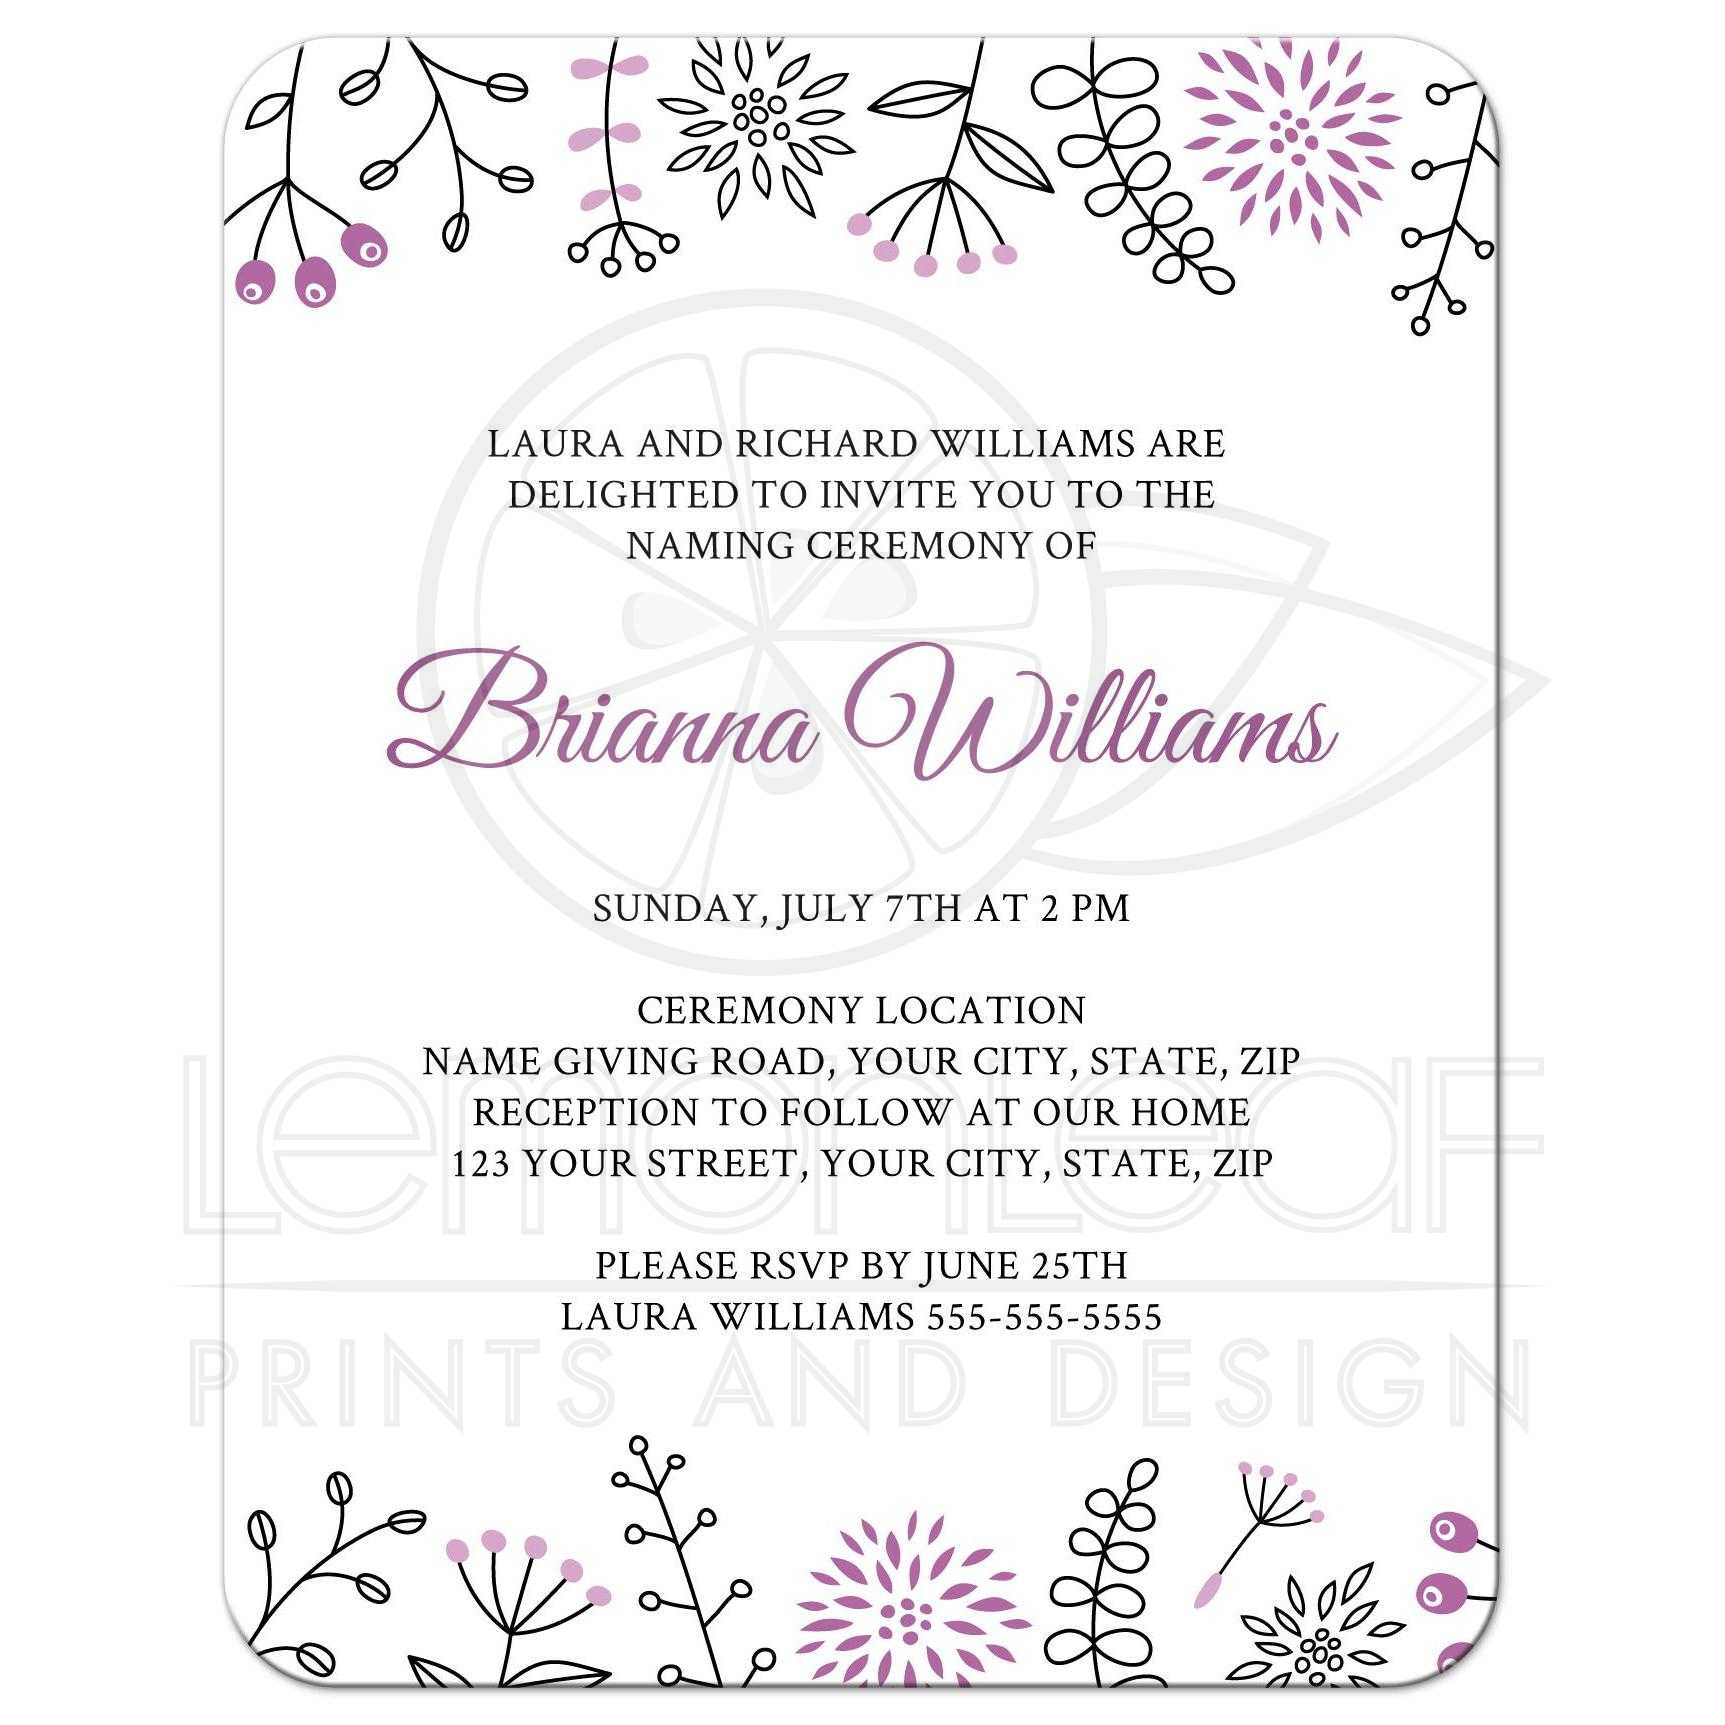 Naming Name Giving Ceremony Invitation With Cute And